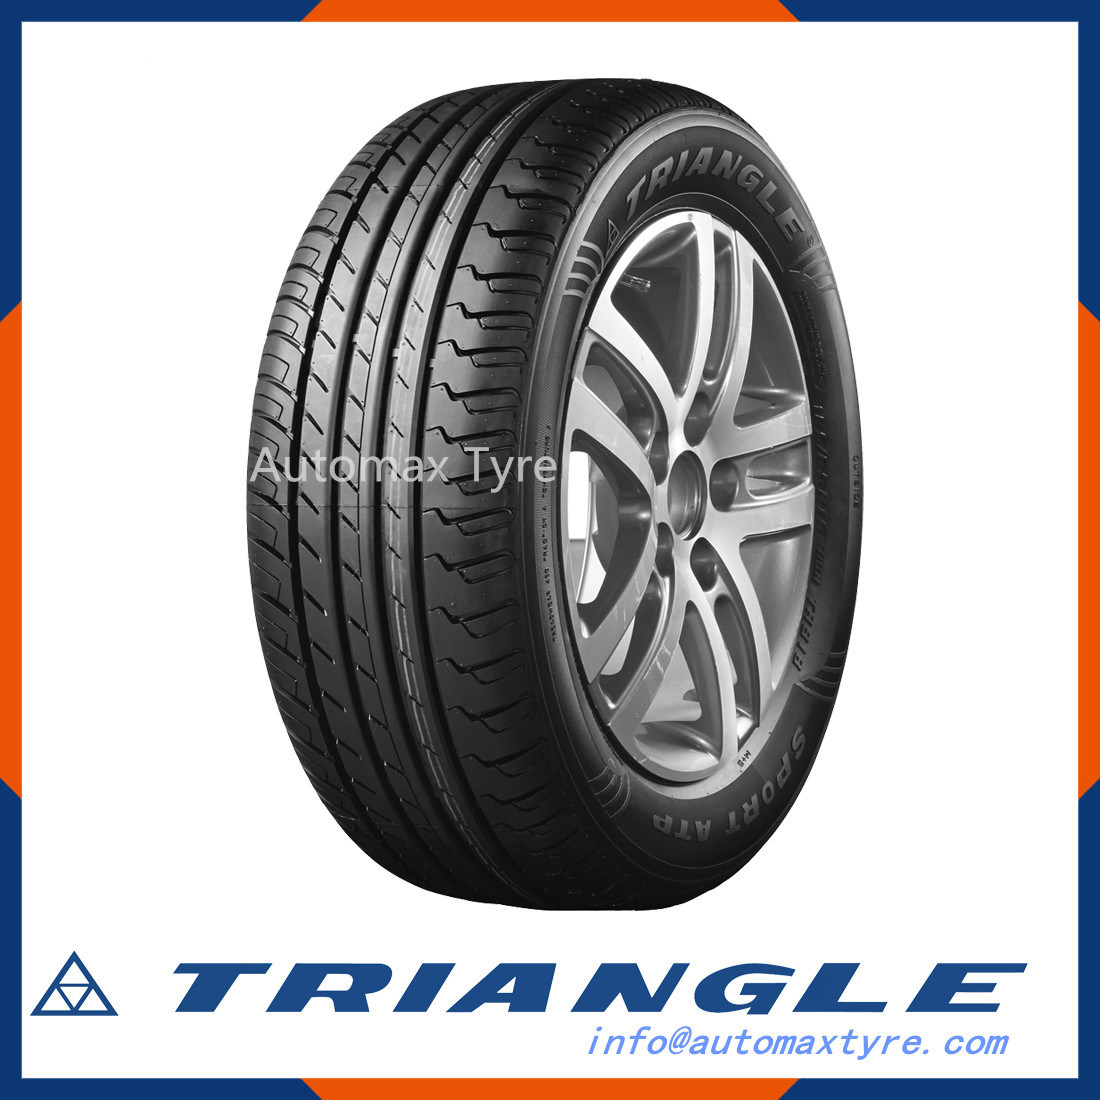 195/55r15 195/60r15 195/65r15 205/60r15 205/65r15 205/50r15 215/60r15 205/60r16 205/50r16 205/55r16 Low Noise High-Speed Triangle Car Tire